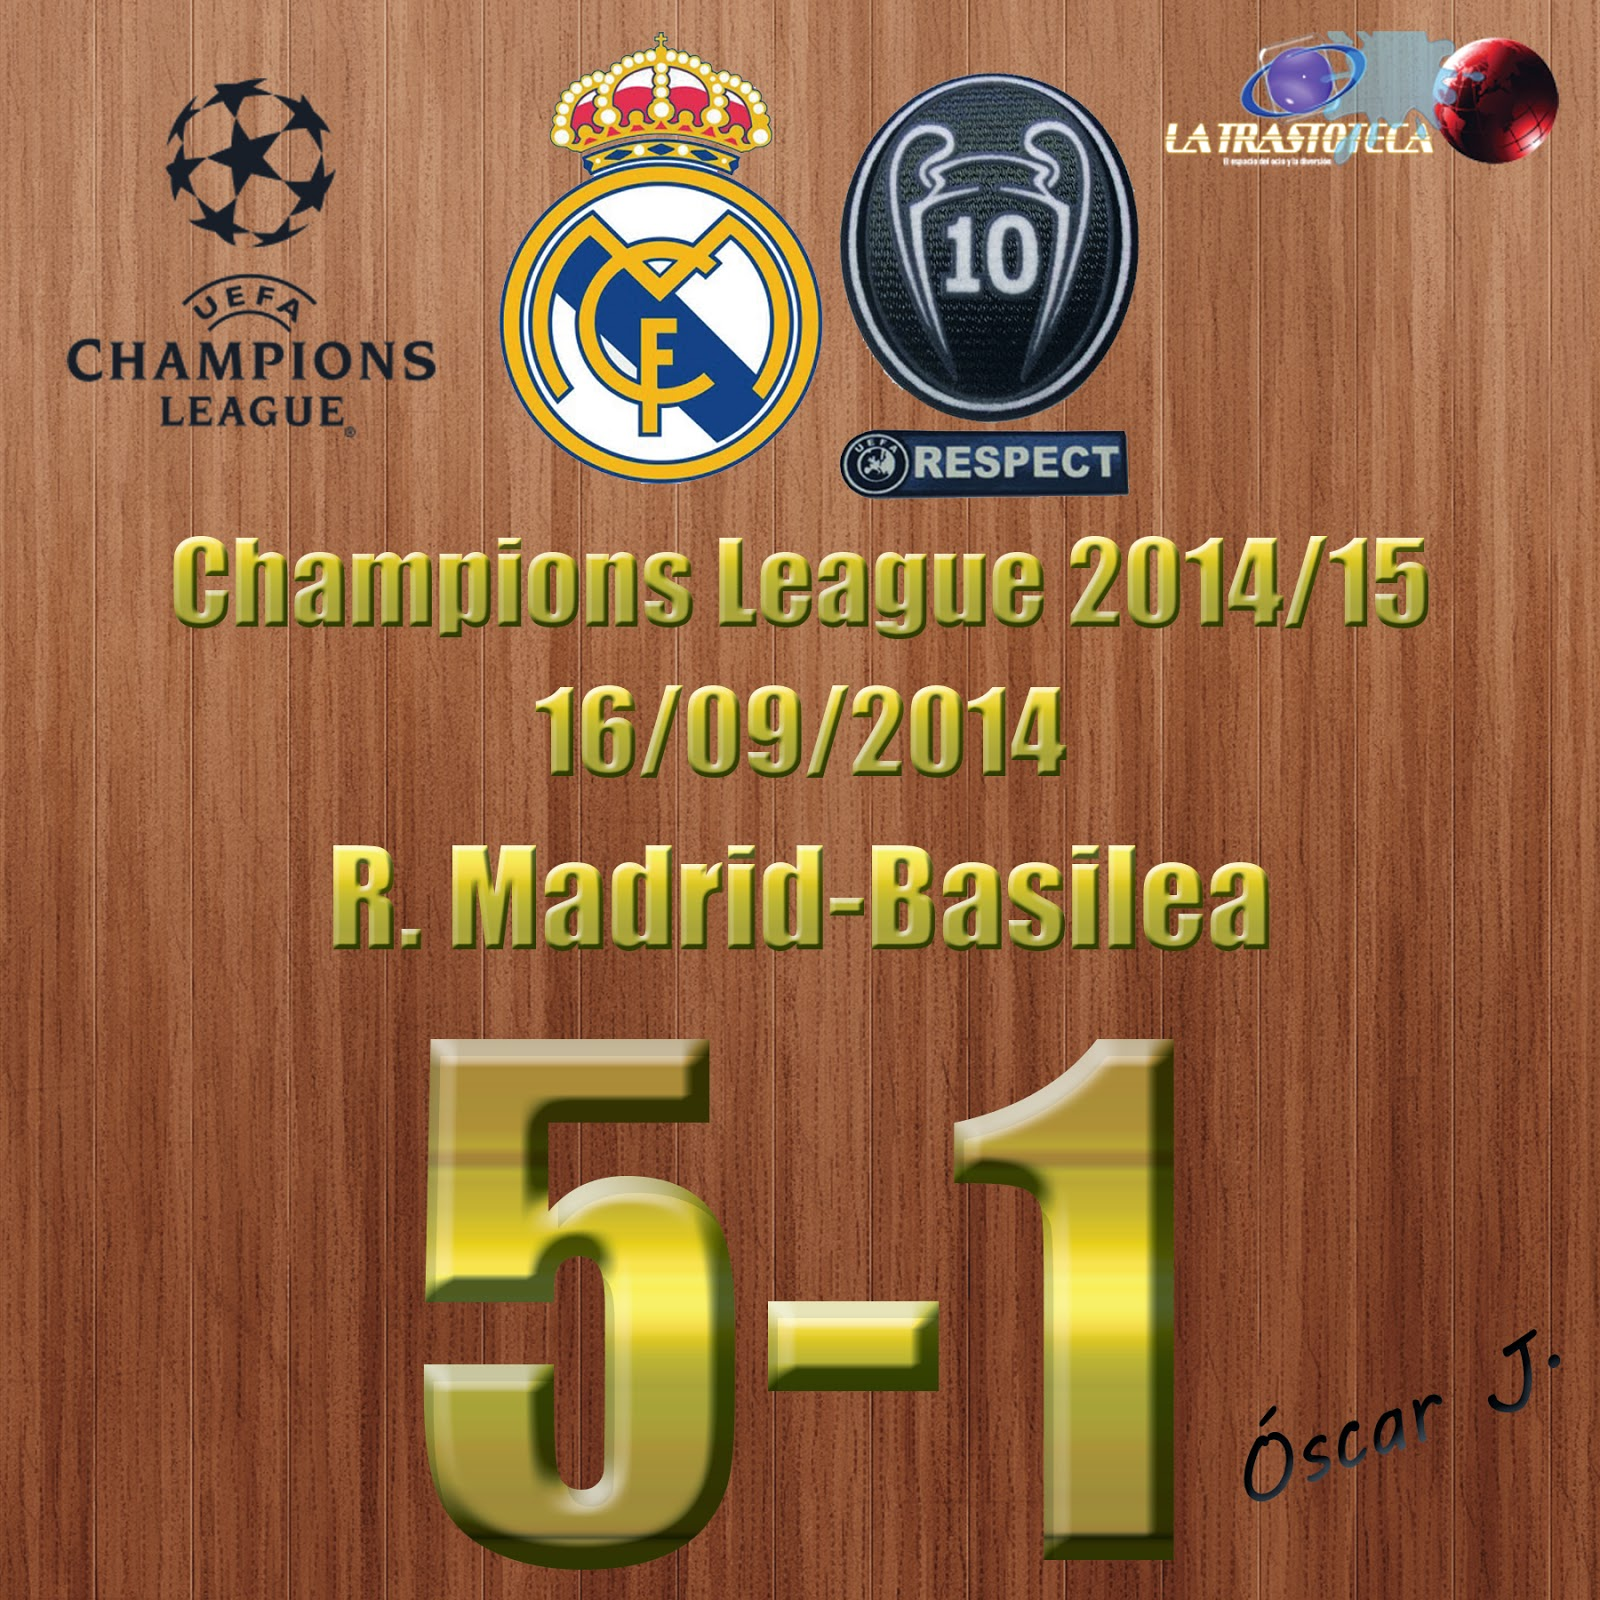 Real Madrid 5-1 Basilea